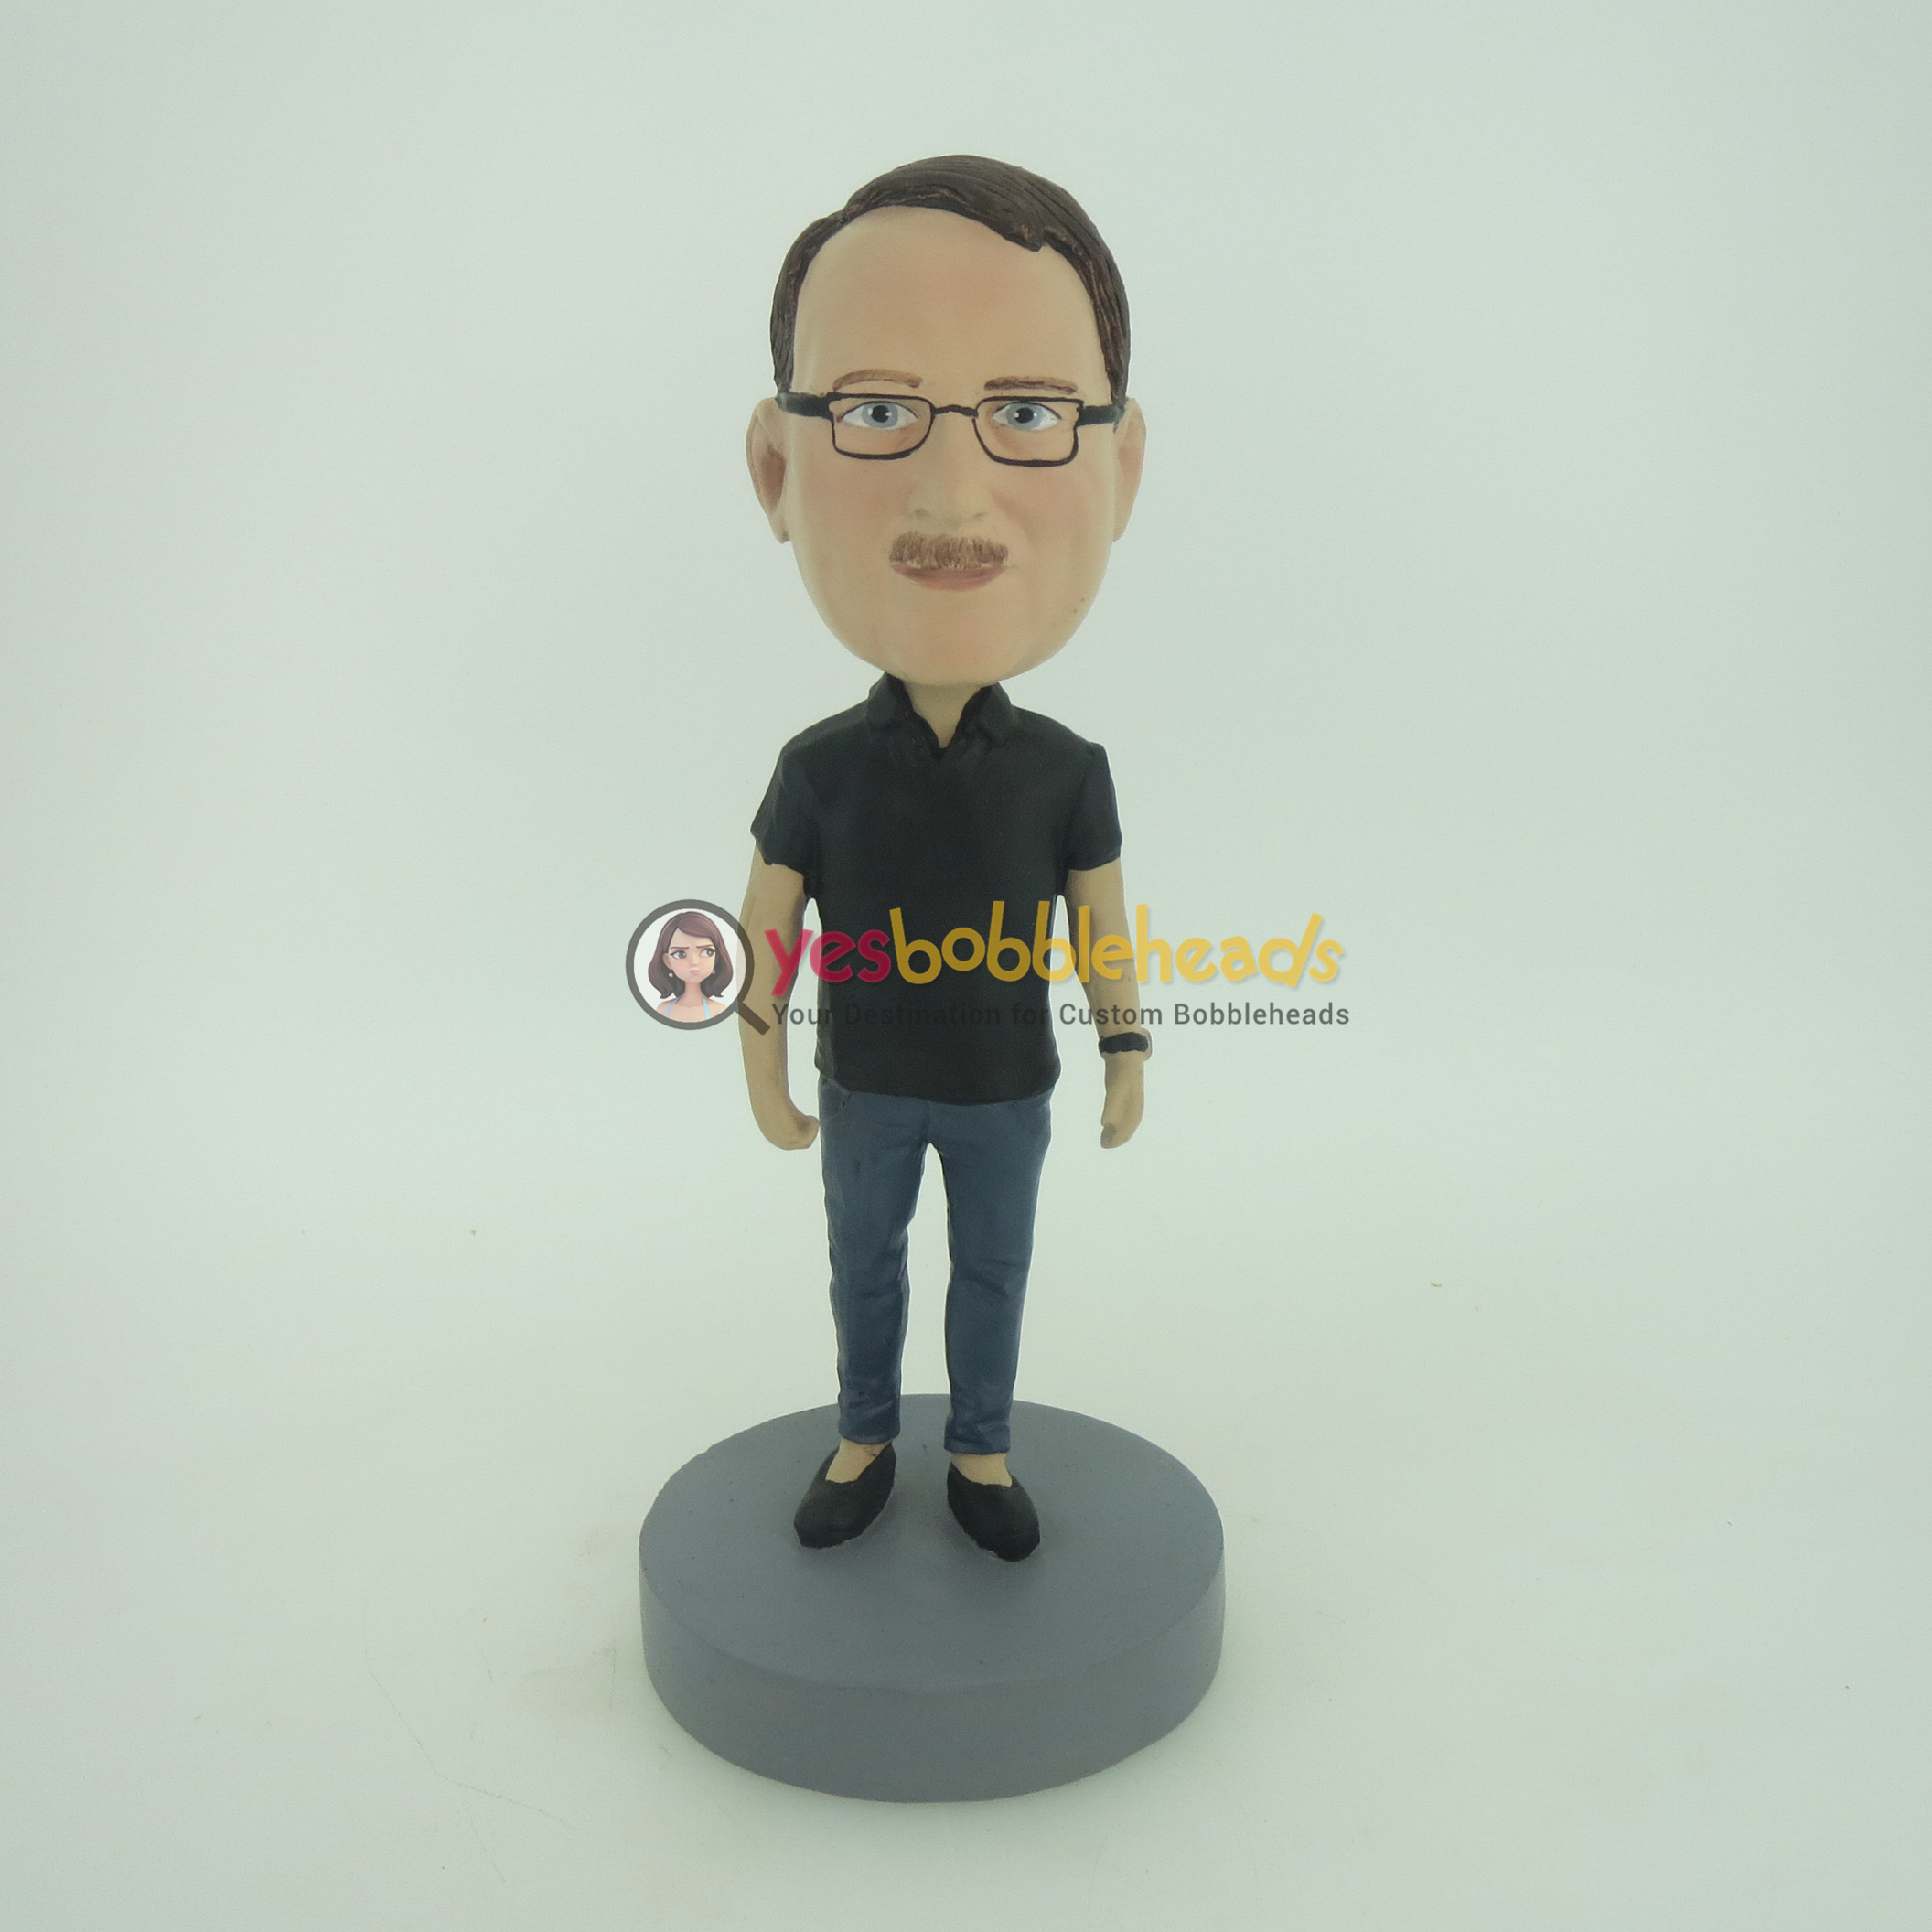 Picture of Custom Bobblehead Doll: Man With Casual TShirt